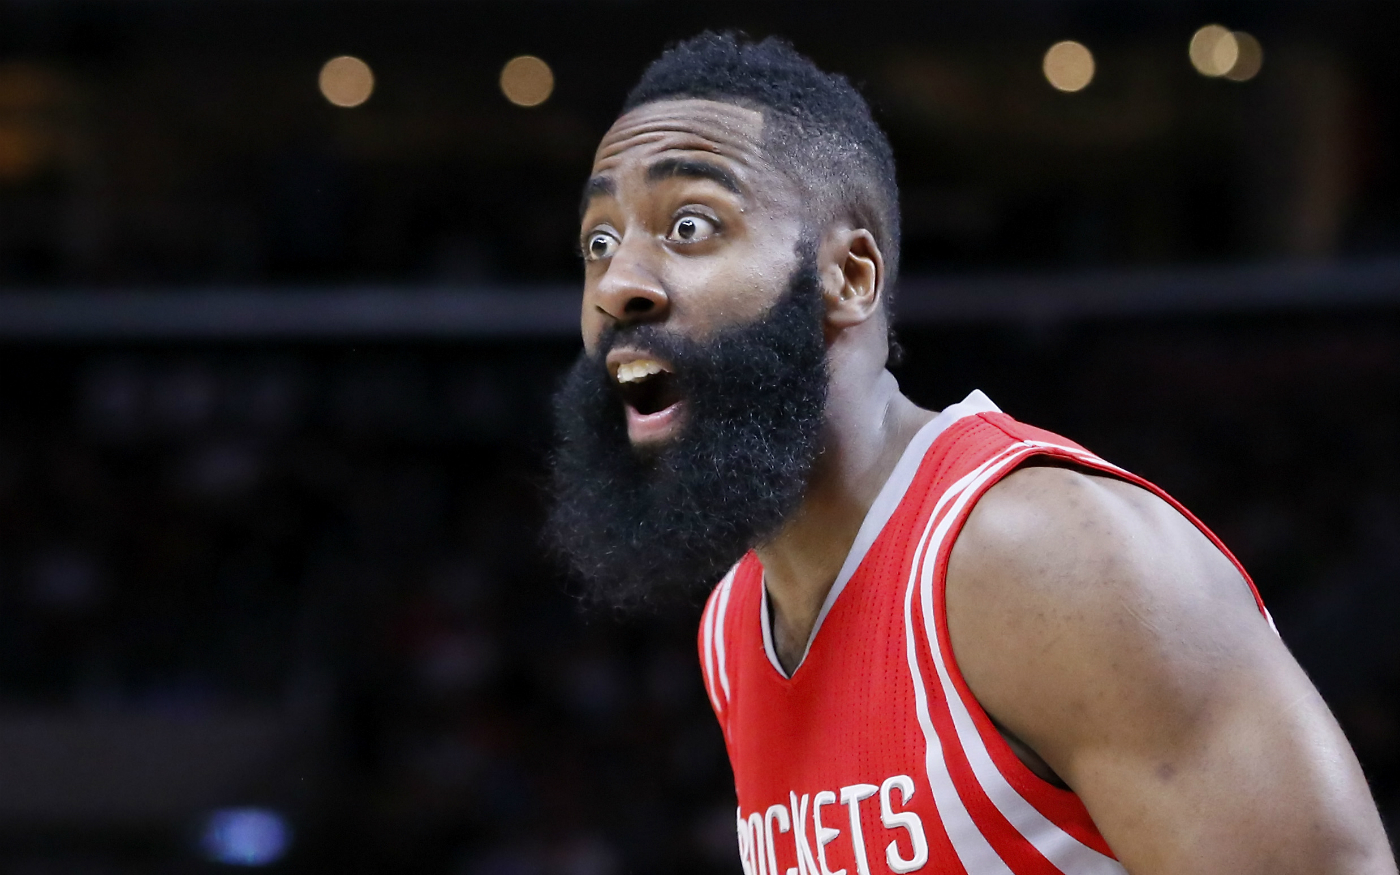 Houston s'incline à Miami malgré la performance spectaculaire d'Harden